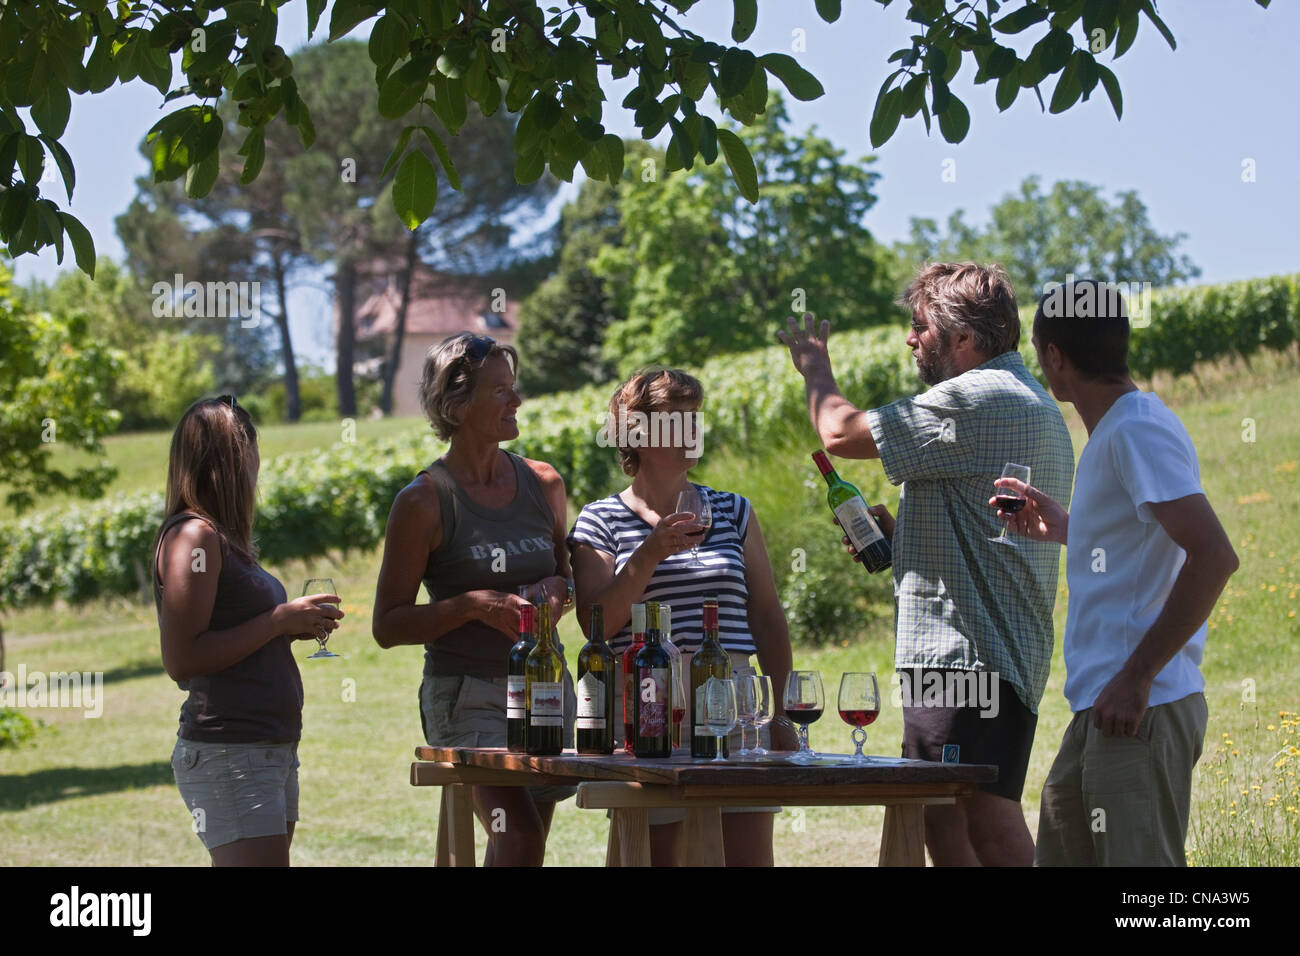 France, Lot, Parnac, tasting at the property with the winemaker Bernard Bouyssou, Chateau Armandie re AOC Cahors - Stock Image